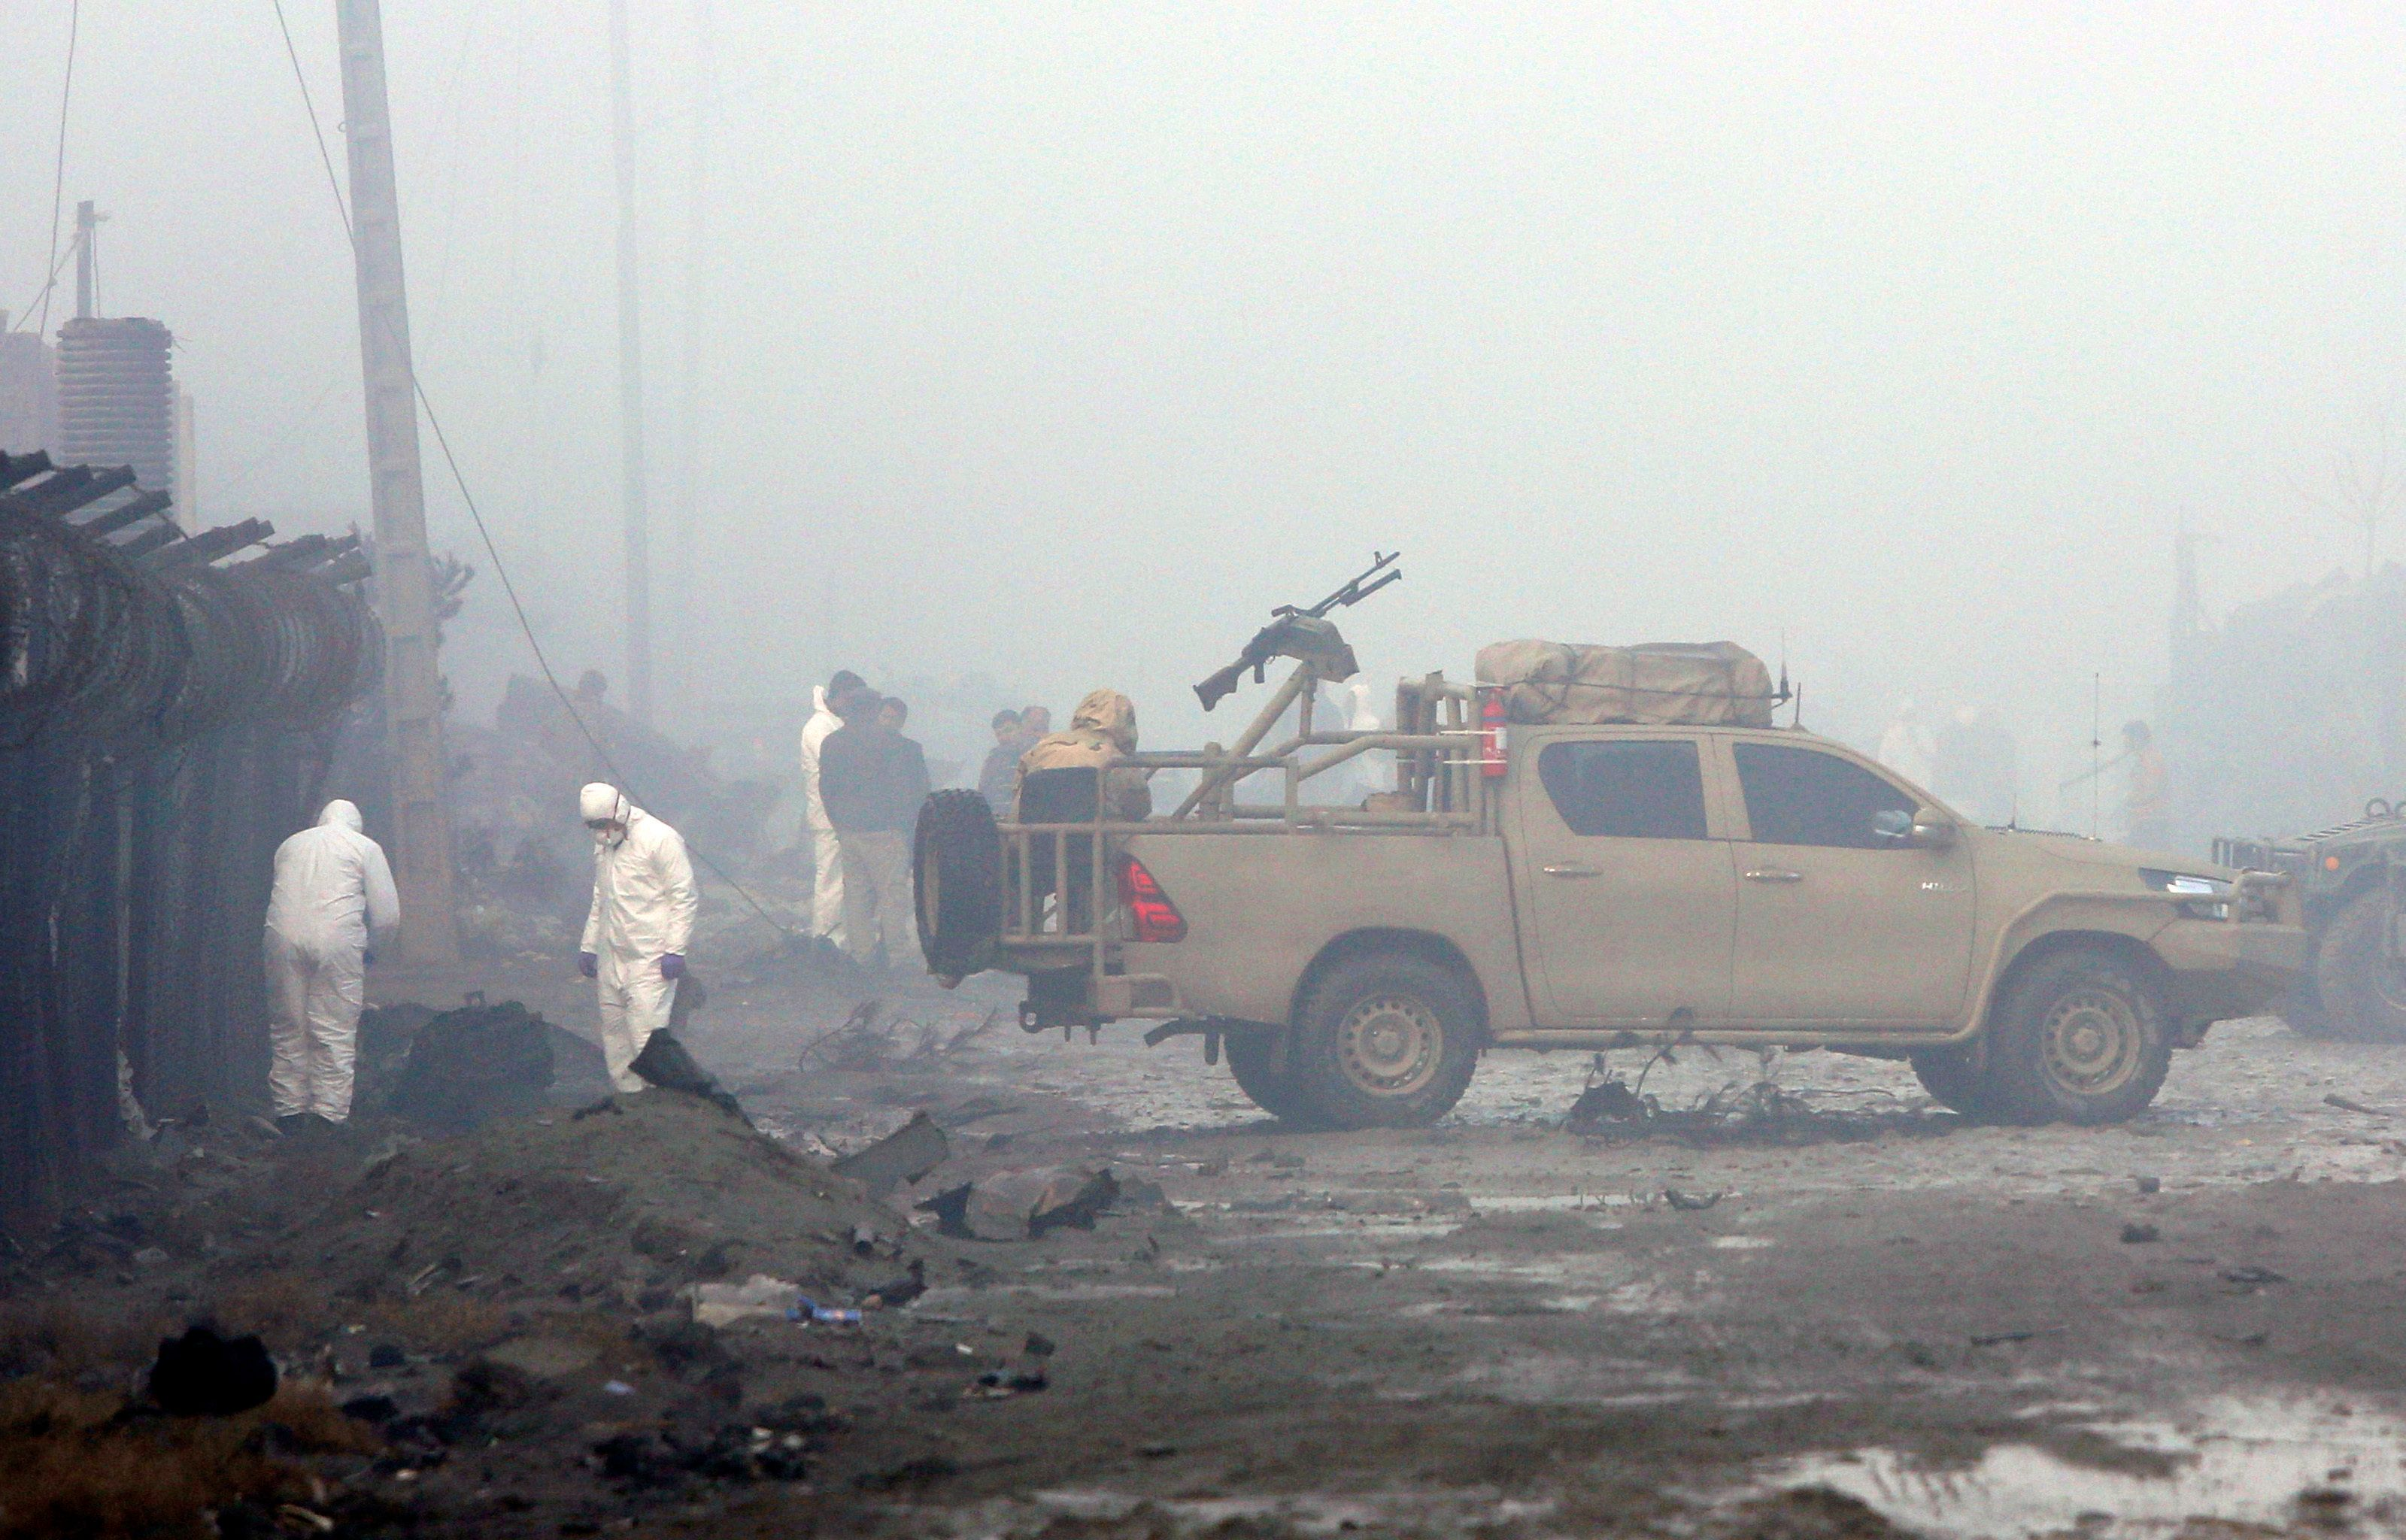 Afghan officials say Taleban attack in Kabul killed six people